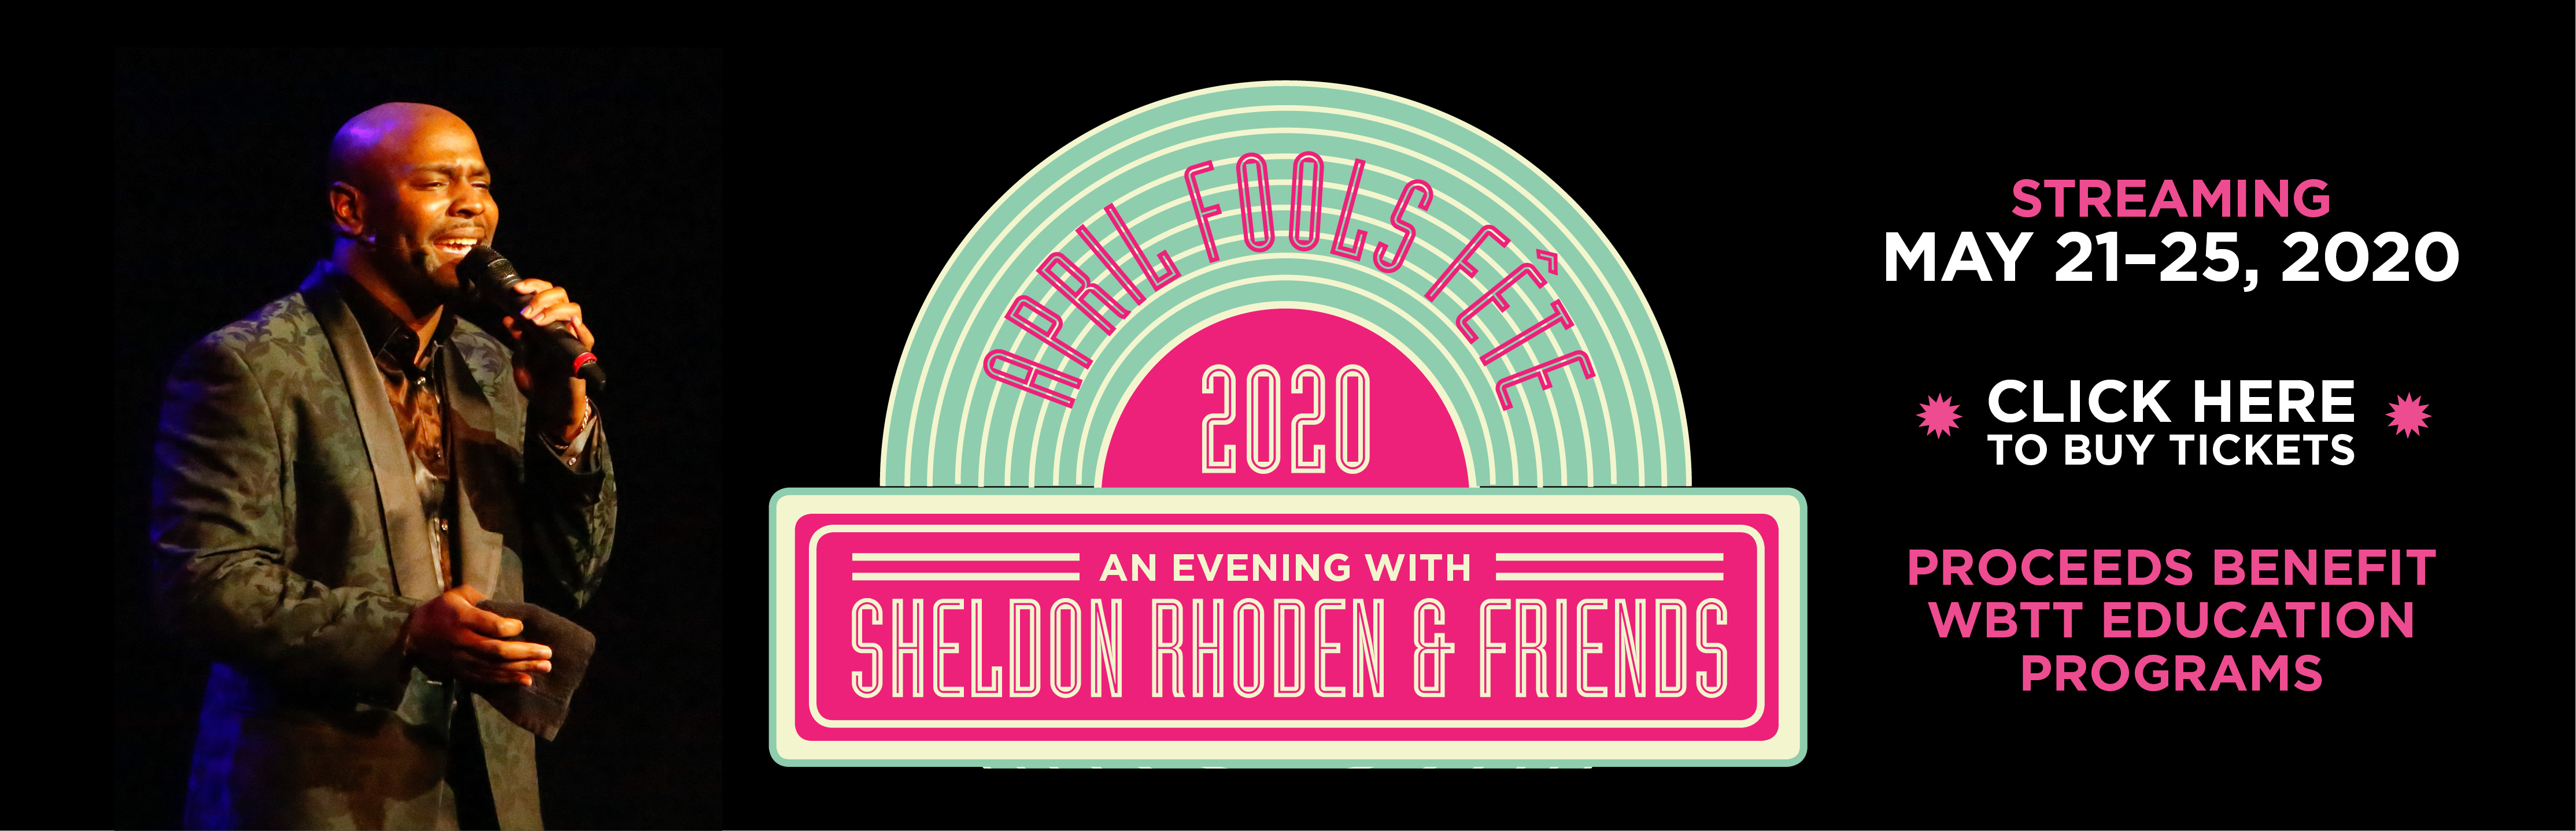 April Fools Fete 2020 Jukebox Picnic; An evening with Sheldon Rhoden and friends. Streaming May 21-25, 2020. Click here to buy tickets. Proceeds benefit WBTT education programs.